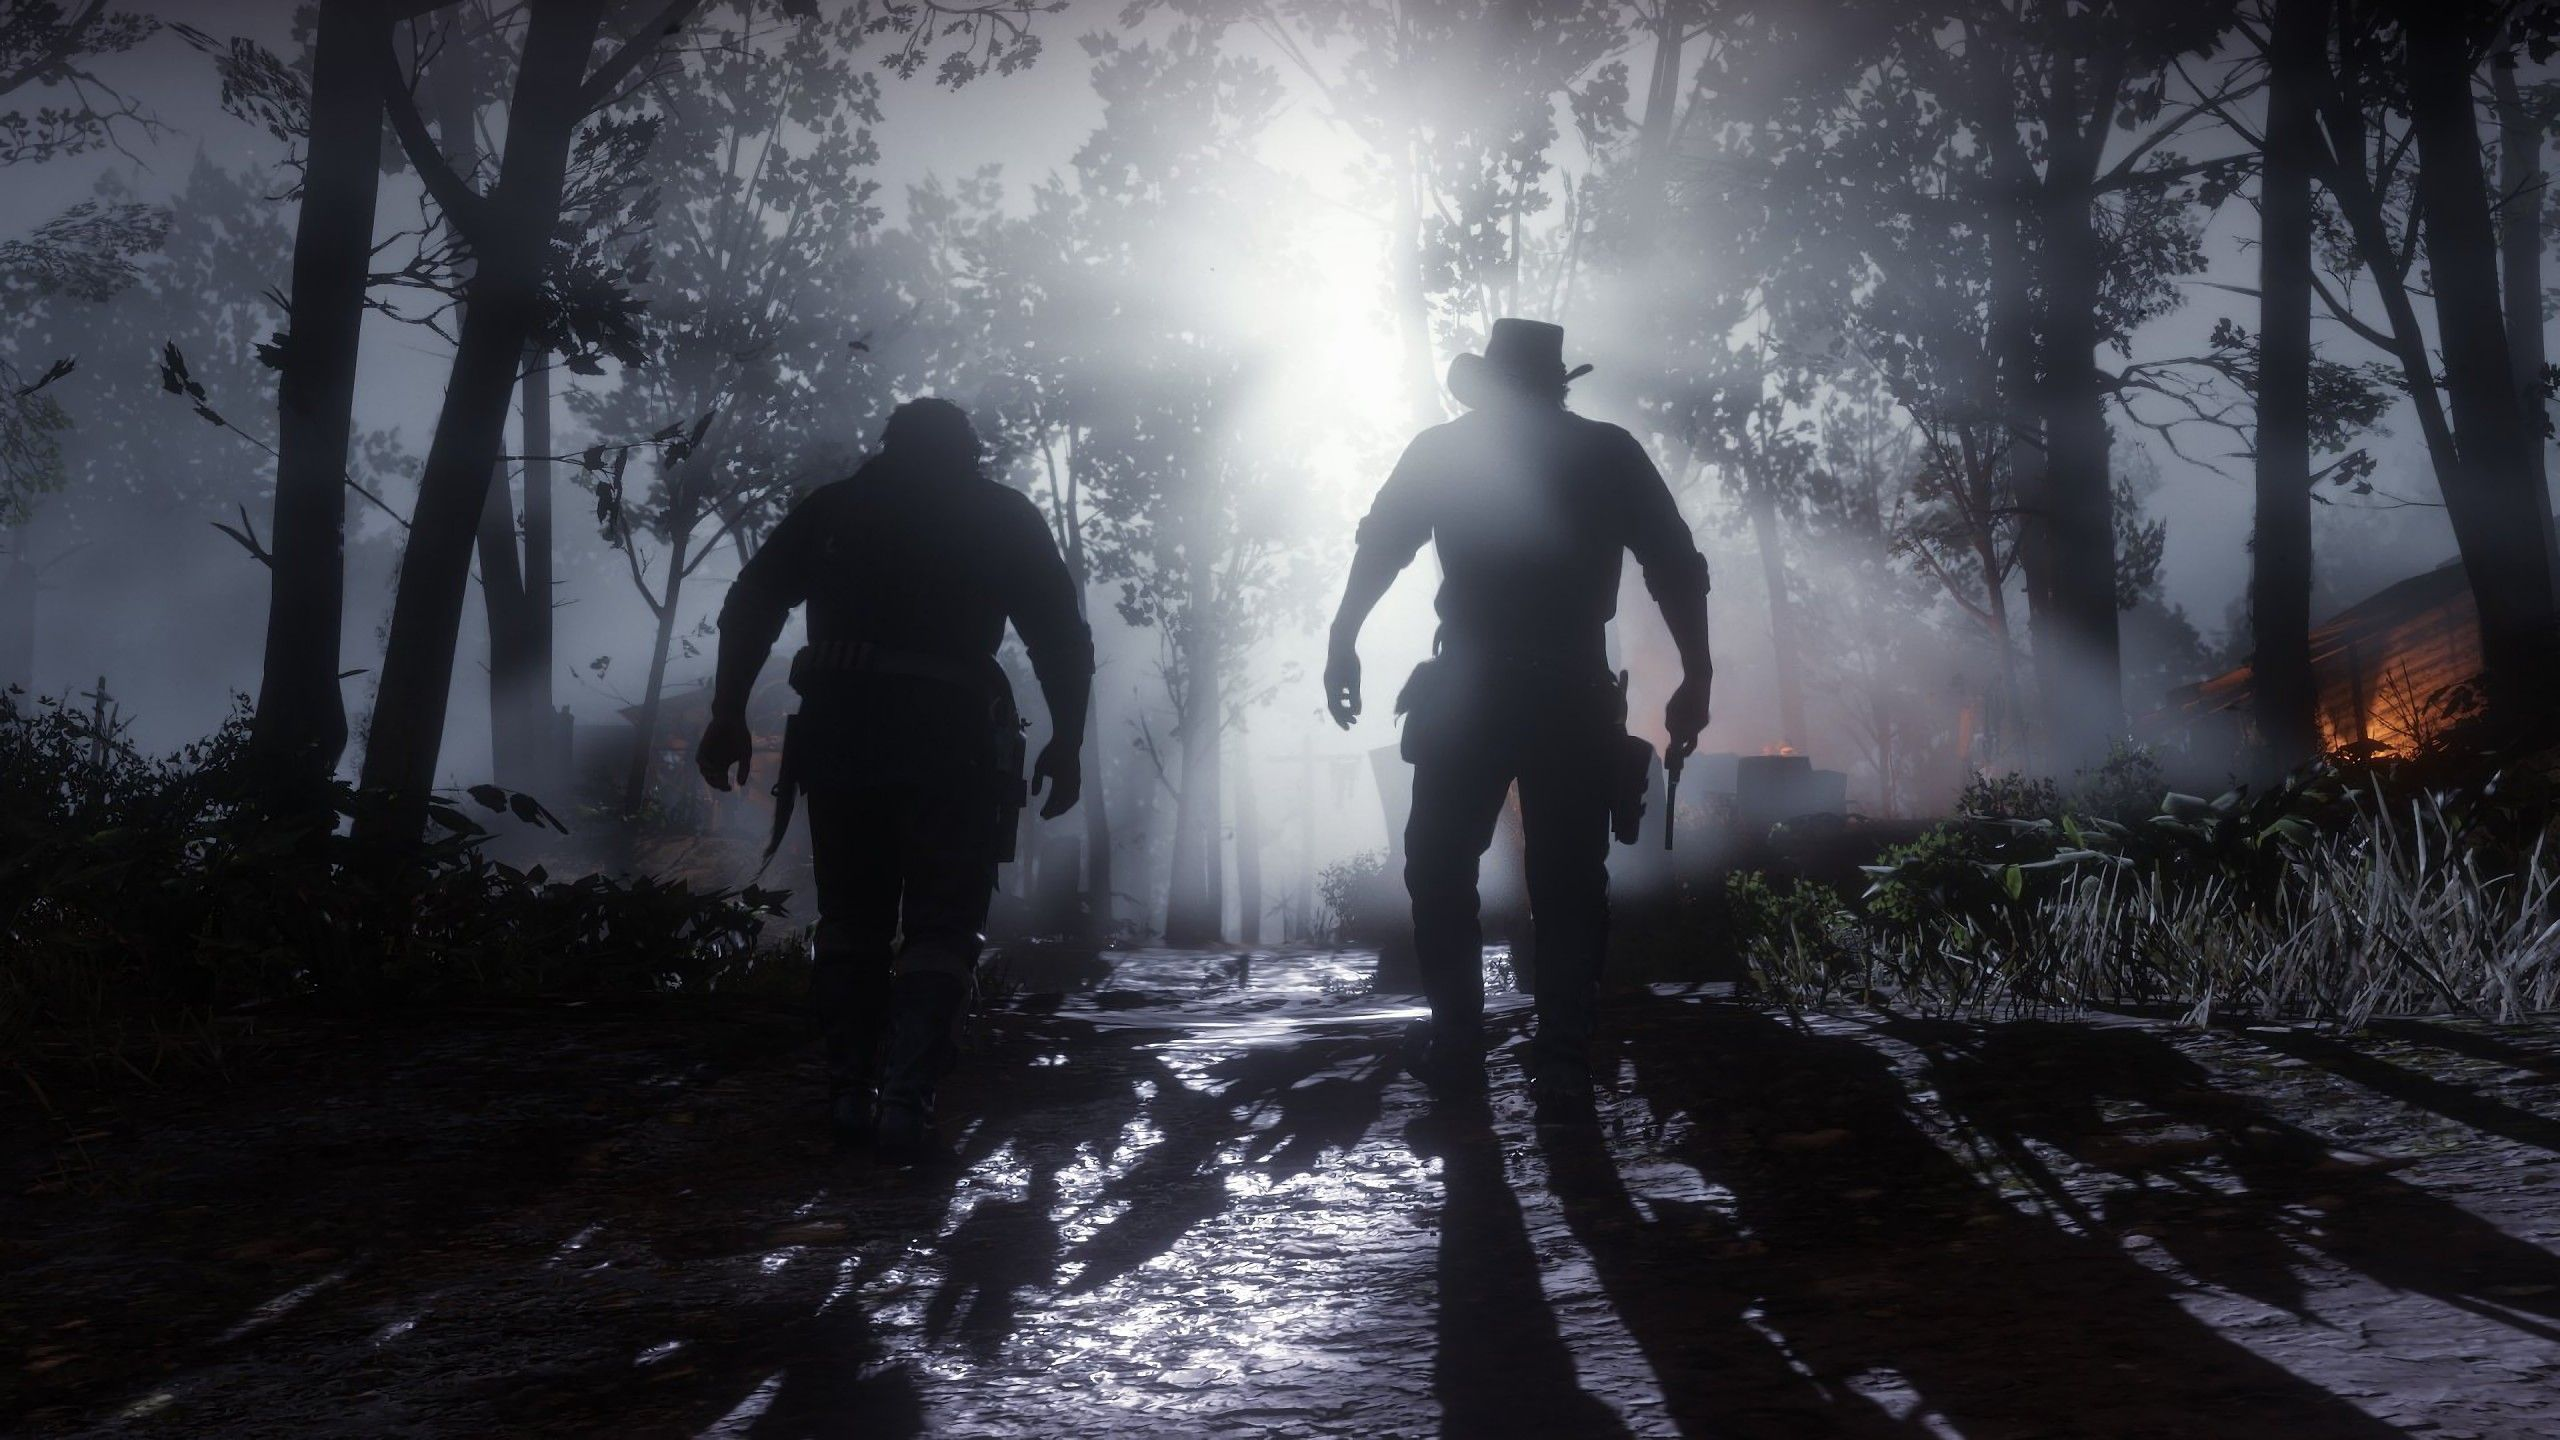 Red Dead Redemption 2 Wallpapers - Top Free Red Dead ...